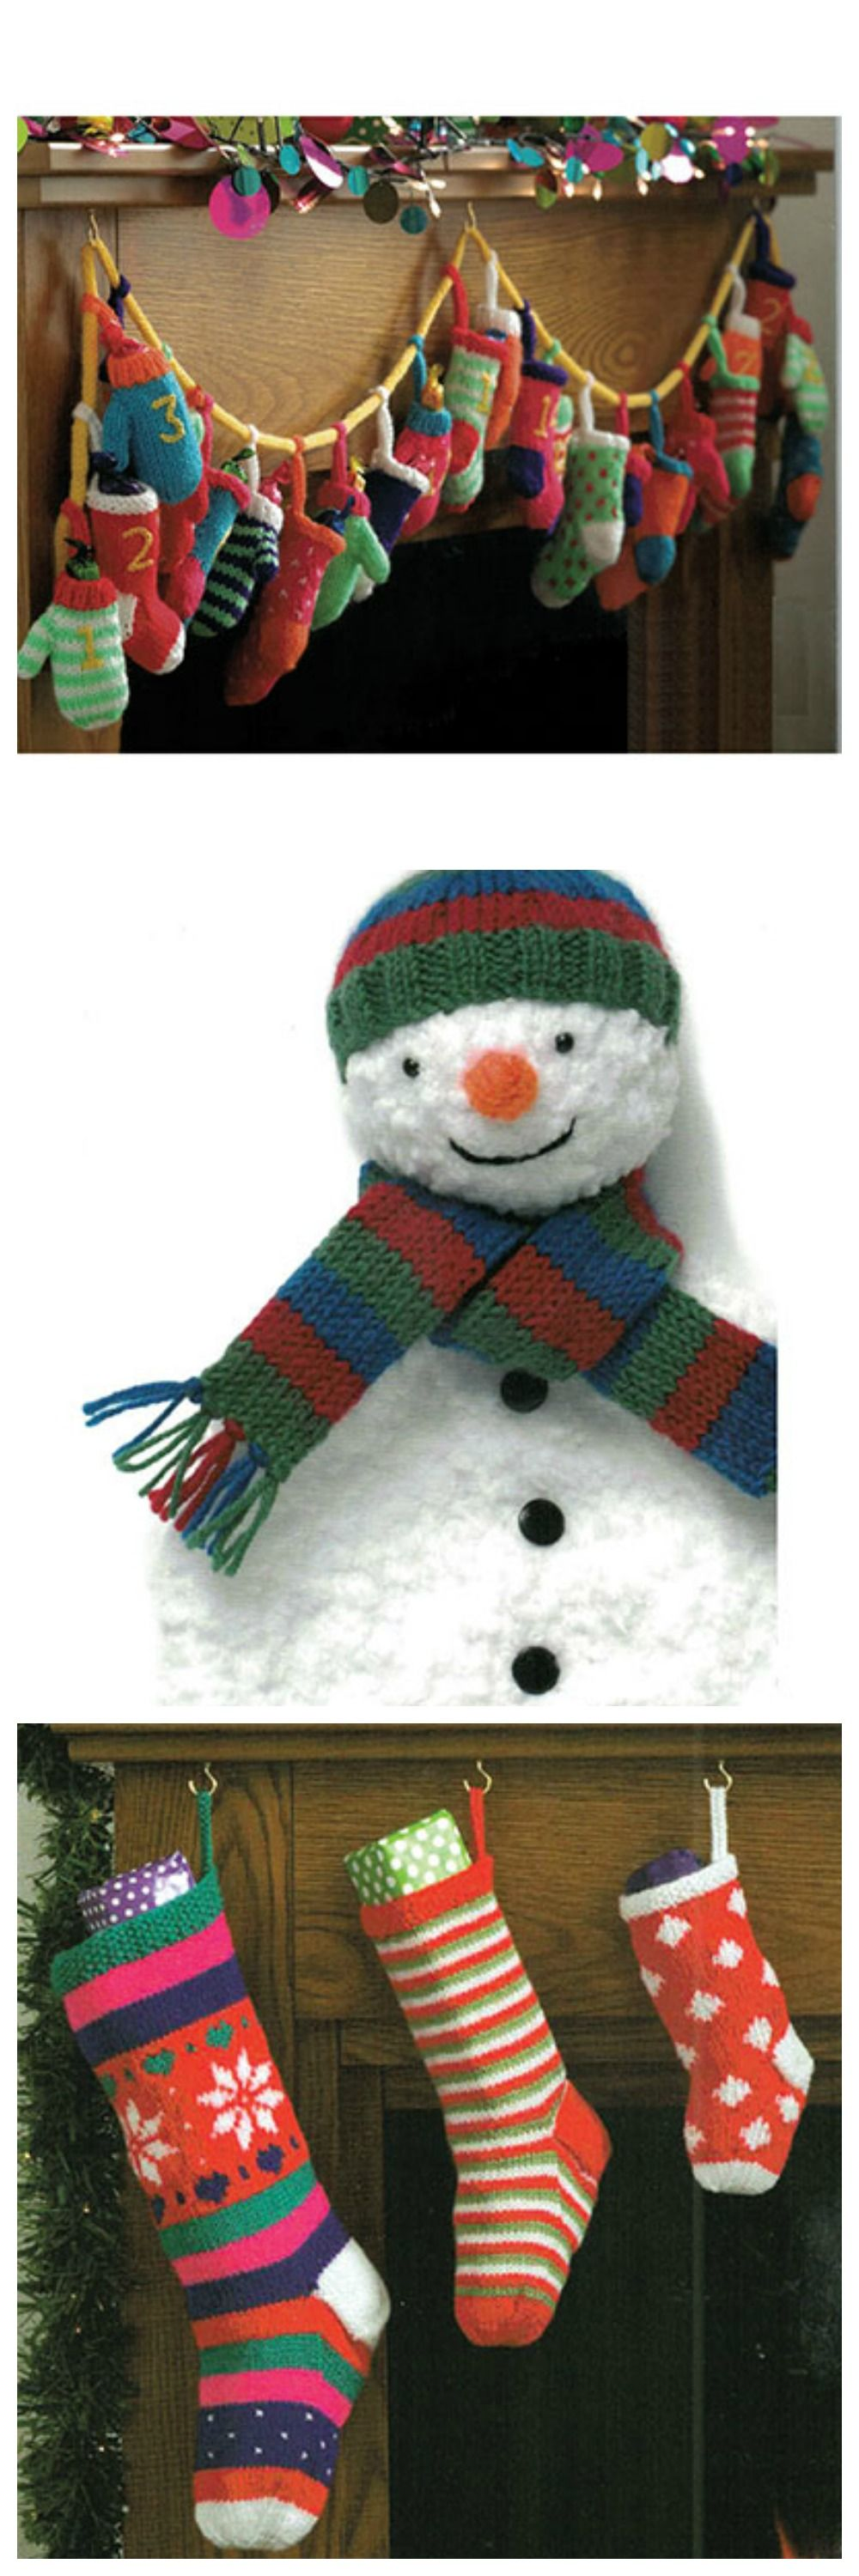 Festive and fun knitting projects from King Cole Christmas ...